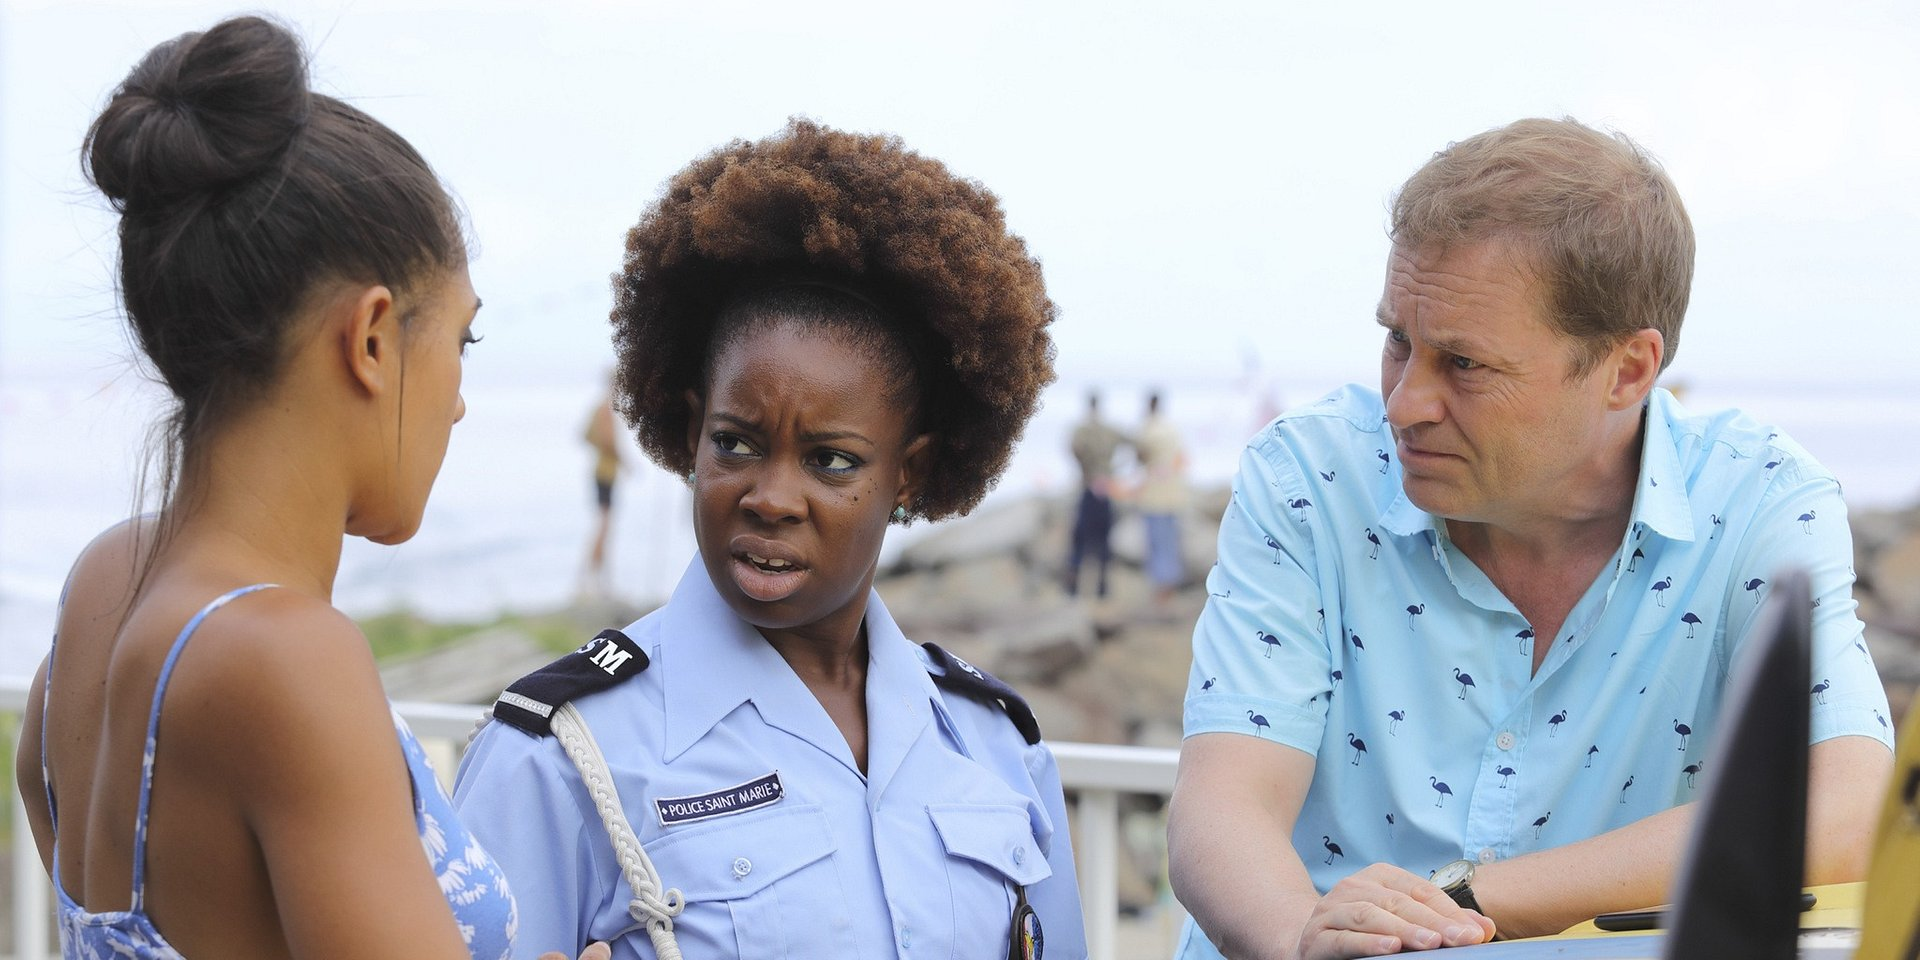 8ª TEMPORADA DE 'DEATH IN PARADISE' CHEGA AO FOX CRIME